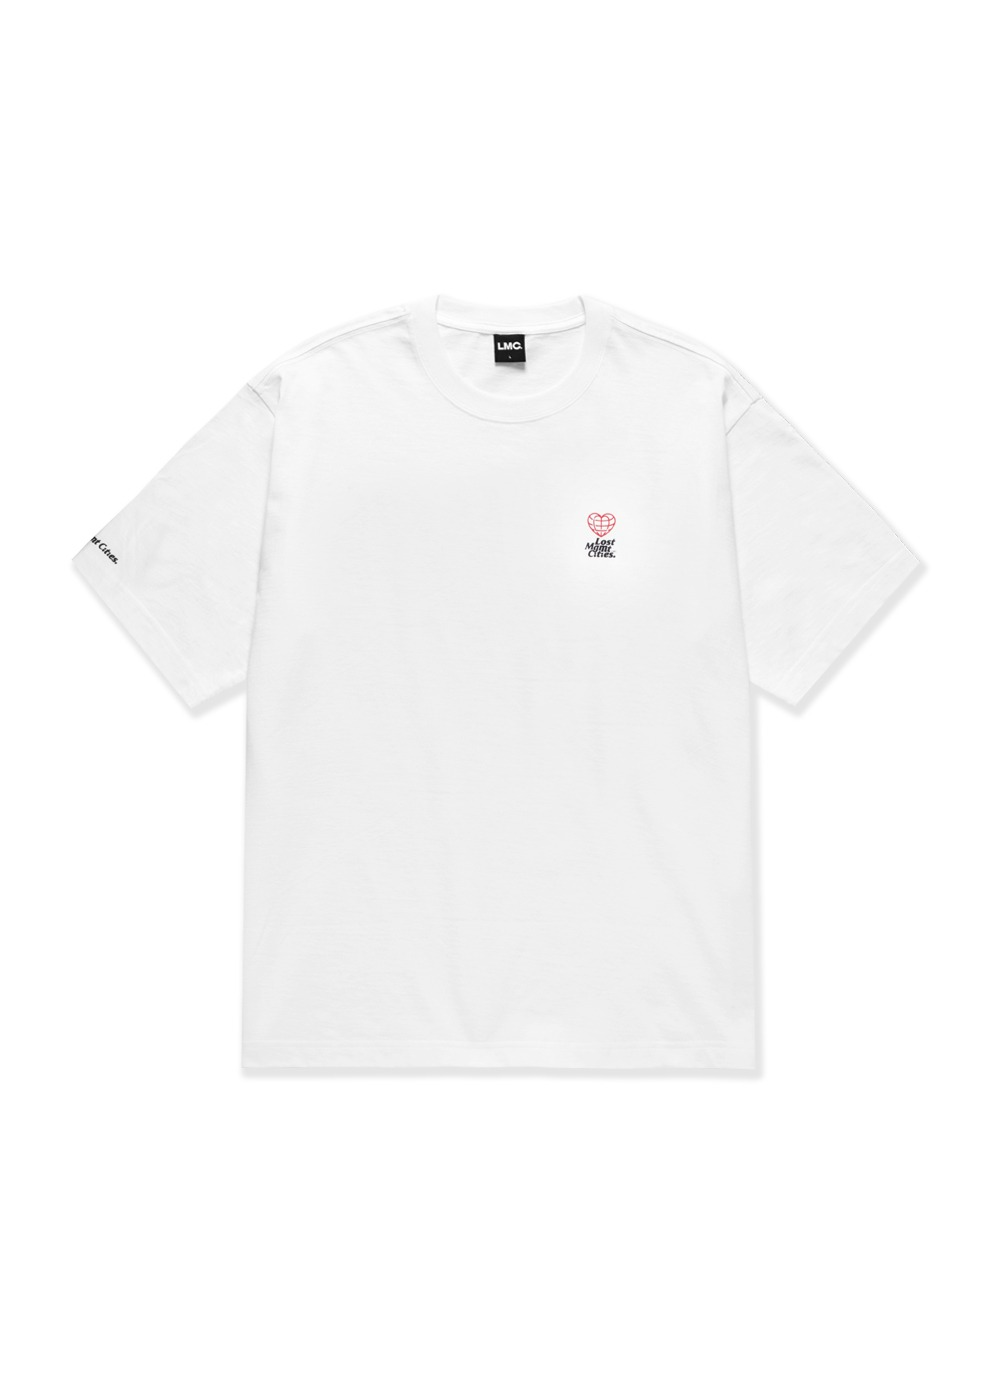 LMC MINI HEART GLOBE TEE white